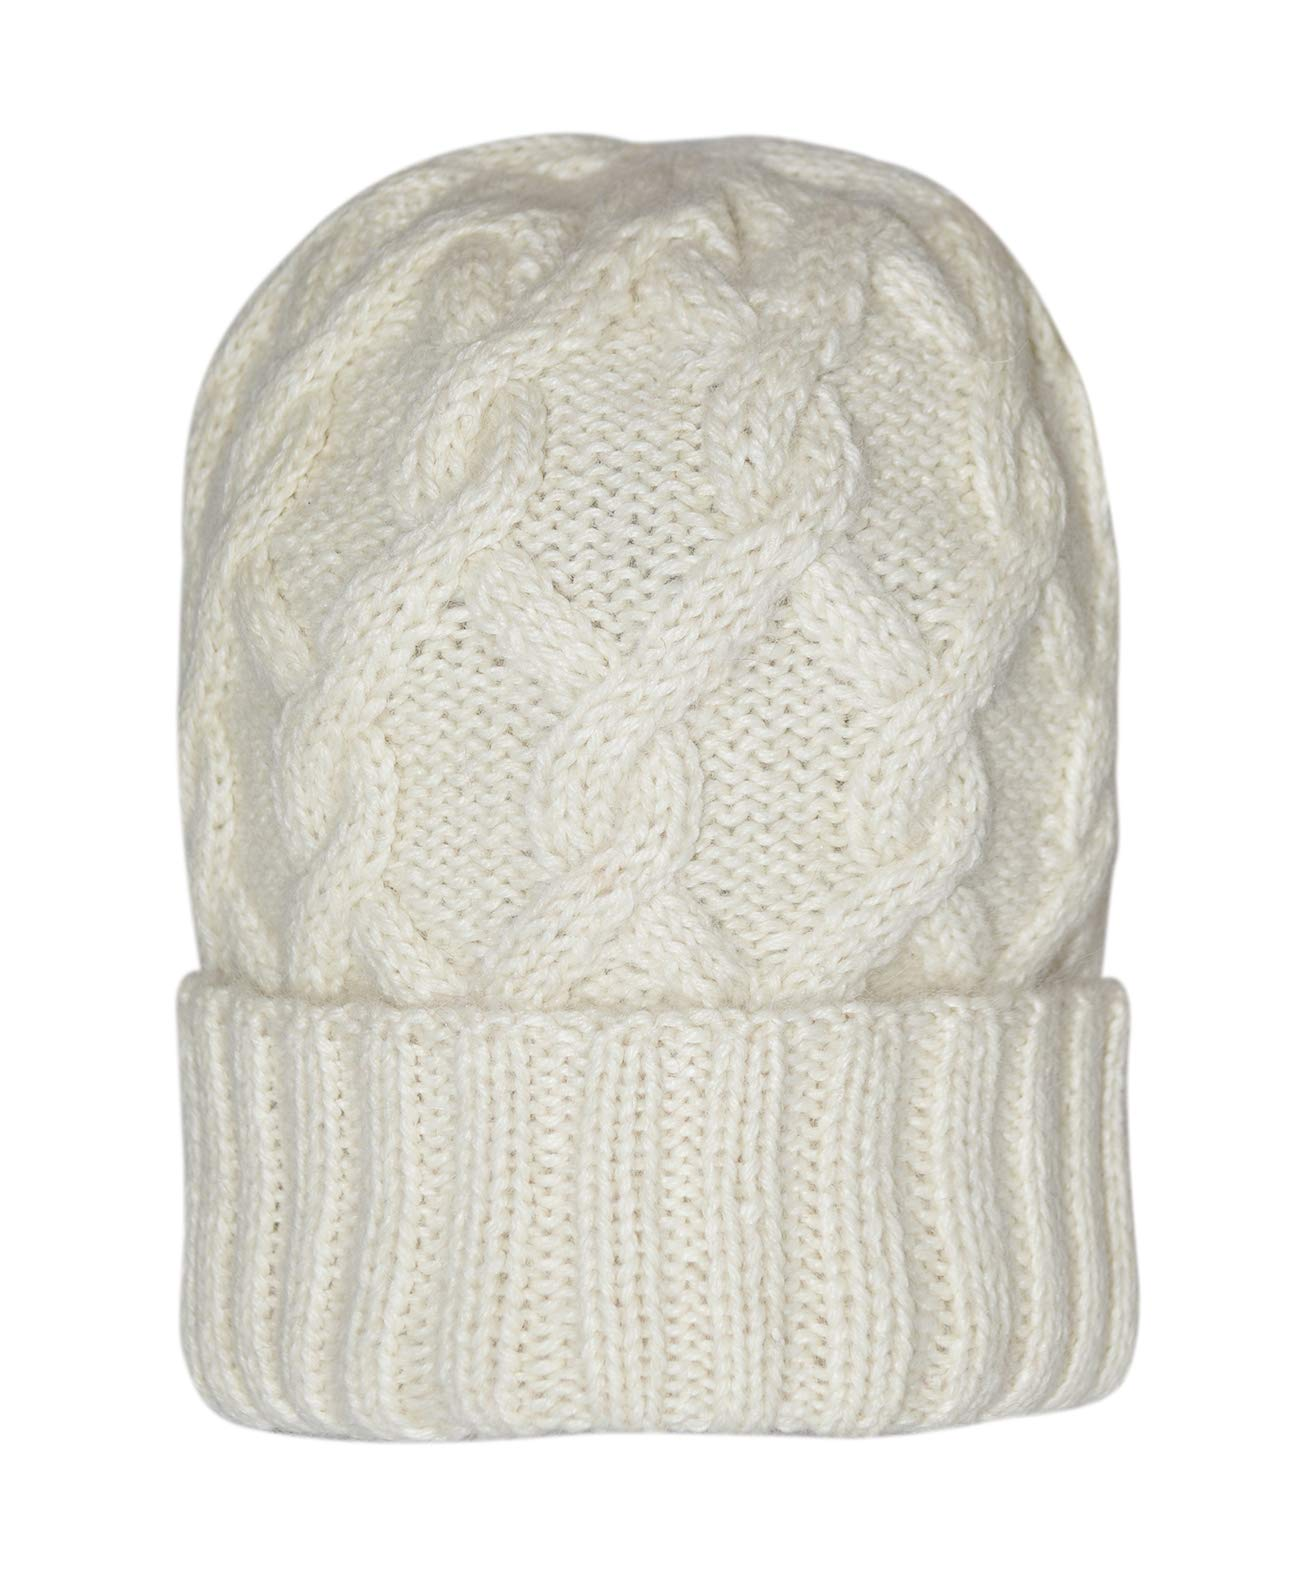 Invisible World Women's 100% Alpaca Wool Hat Knit Winter Beanie Snake Cable White Cap